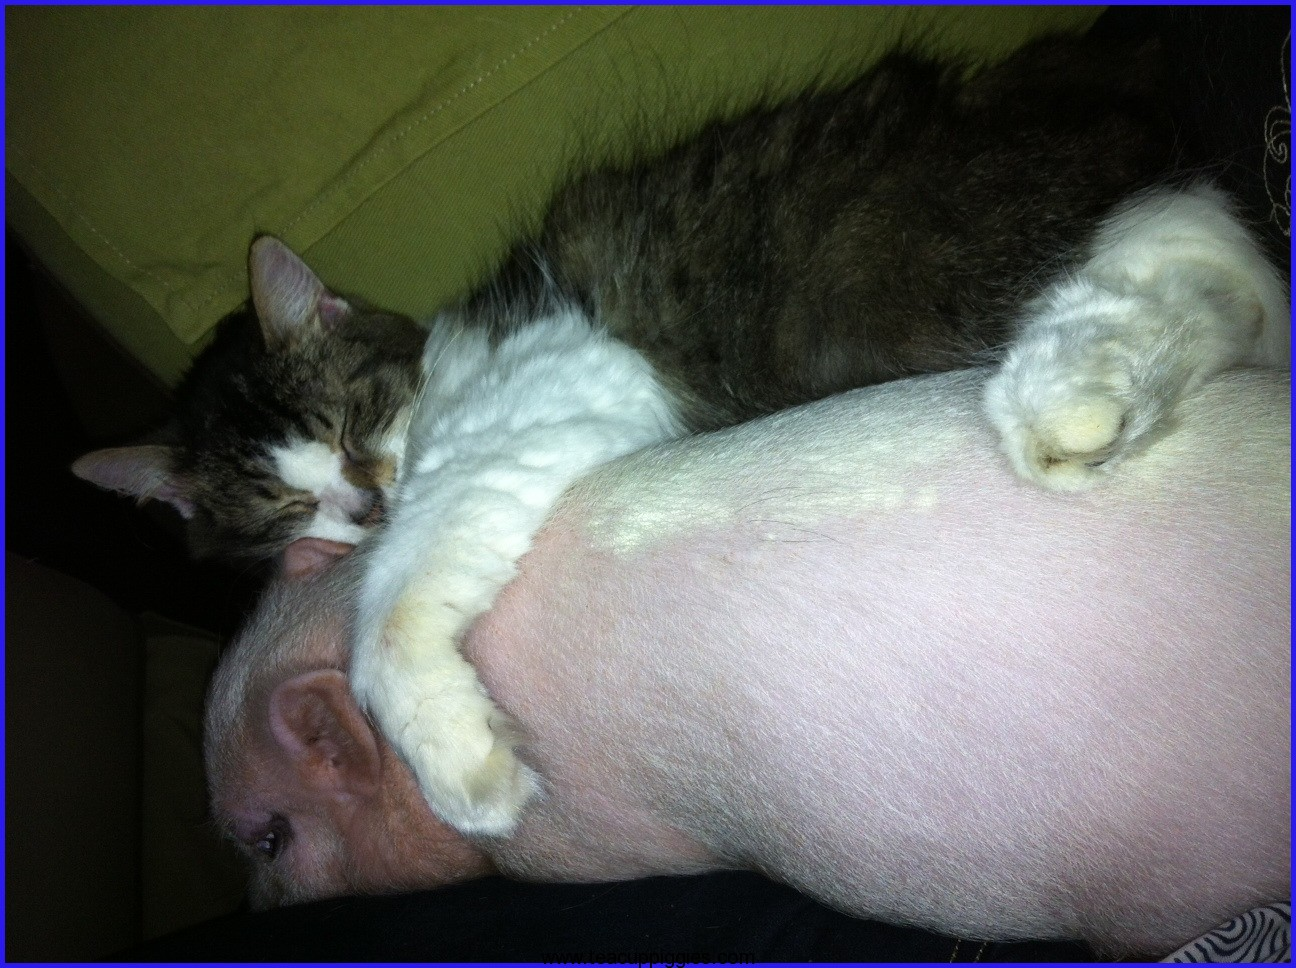 Adult mini potbelly pig - photo#18